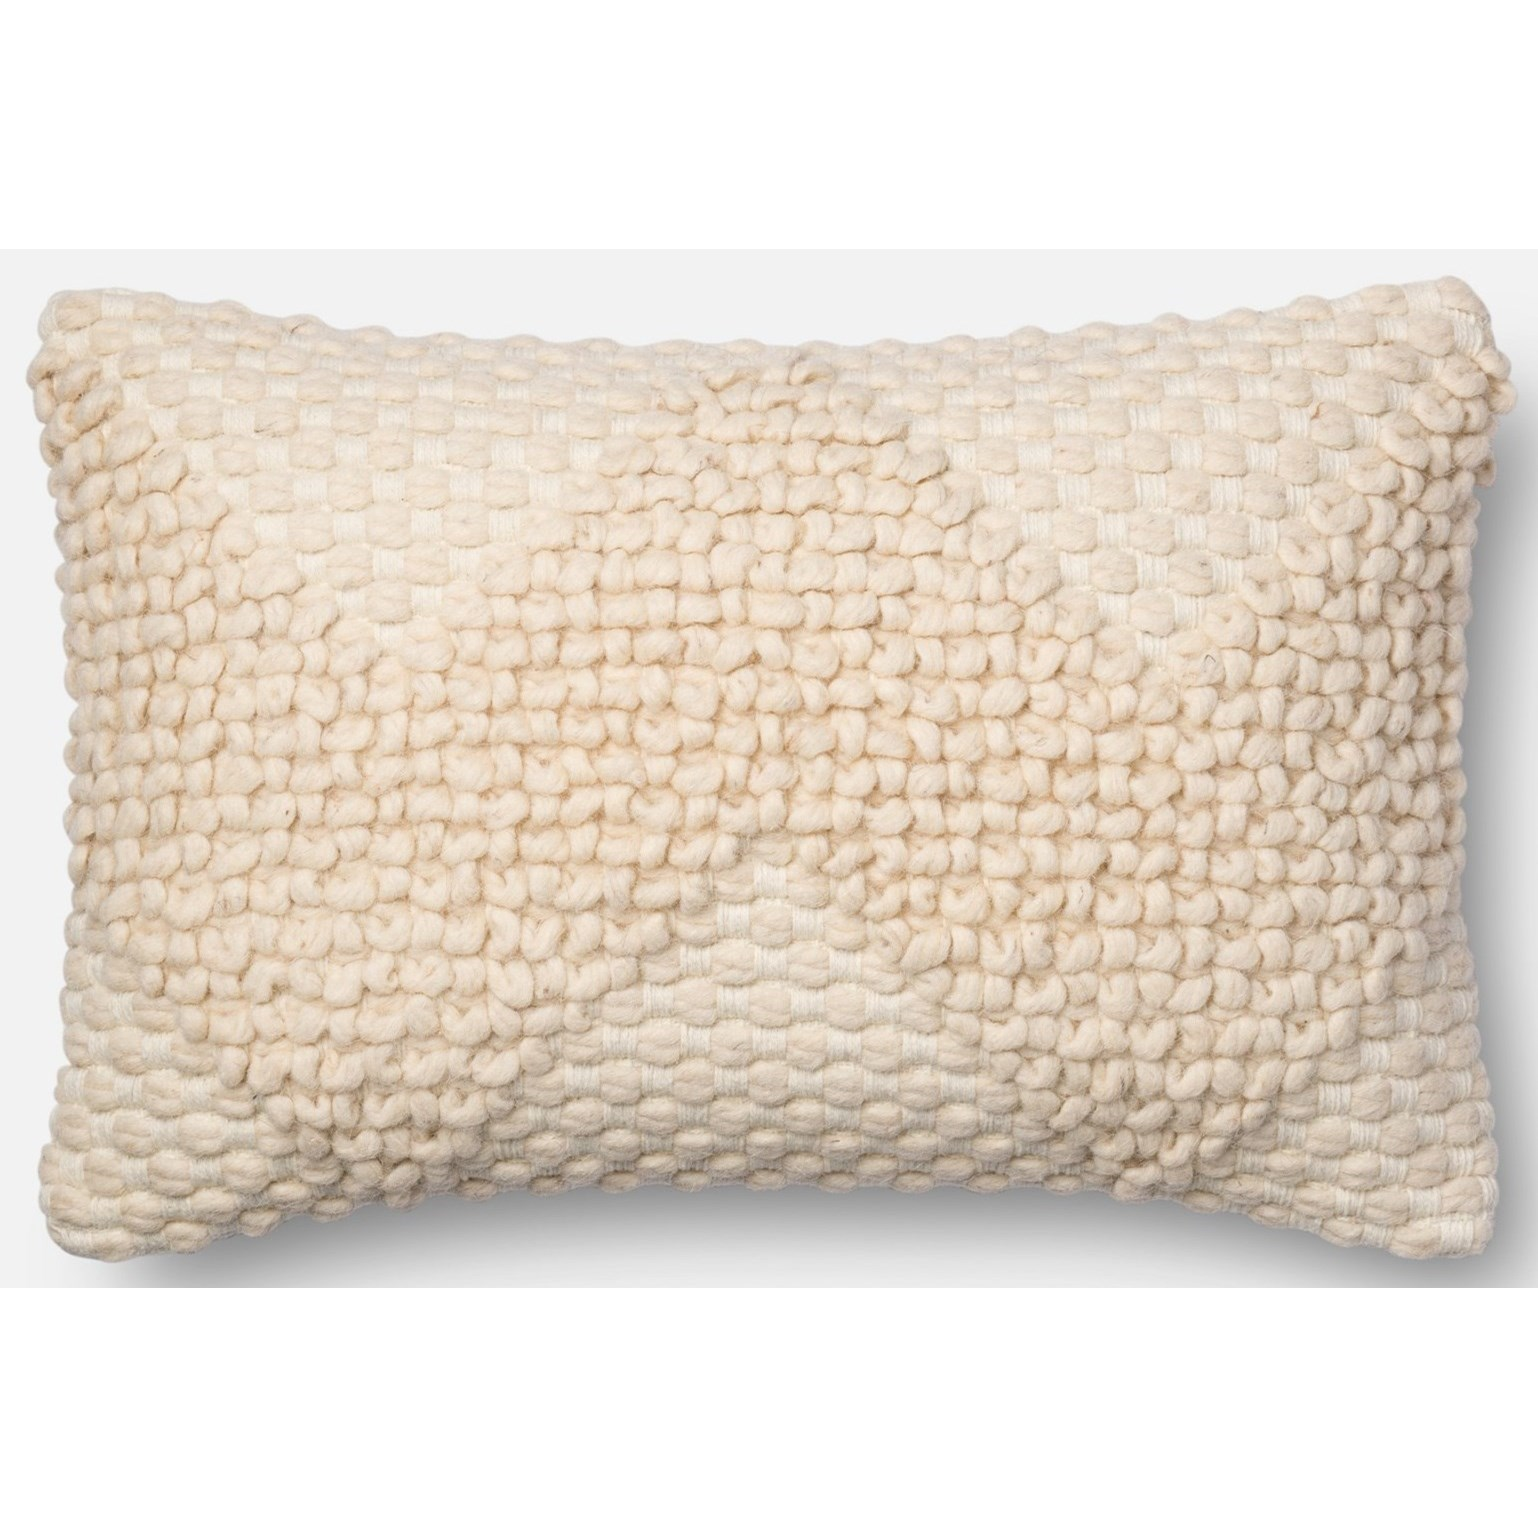 """Loloi Rugs Accent Pillows 13"""" X 21"""" Cover w/Poly - Item Number: PSETP1007IV00PIL5"""